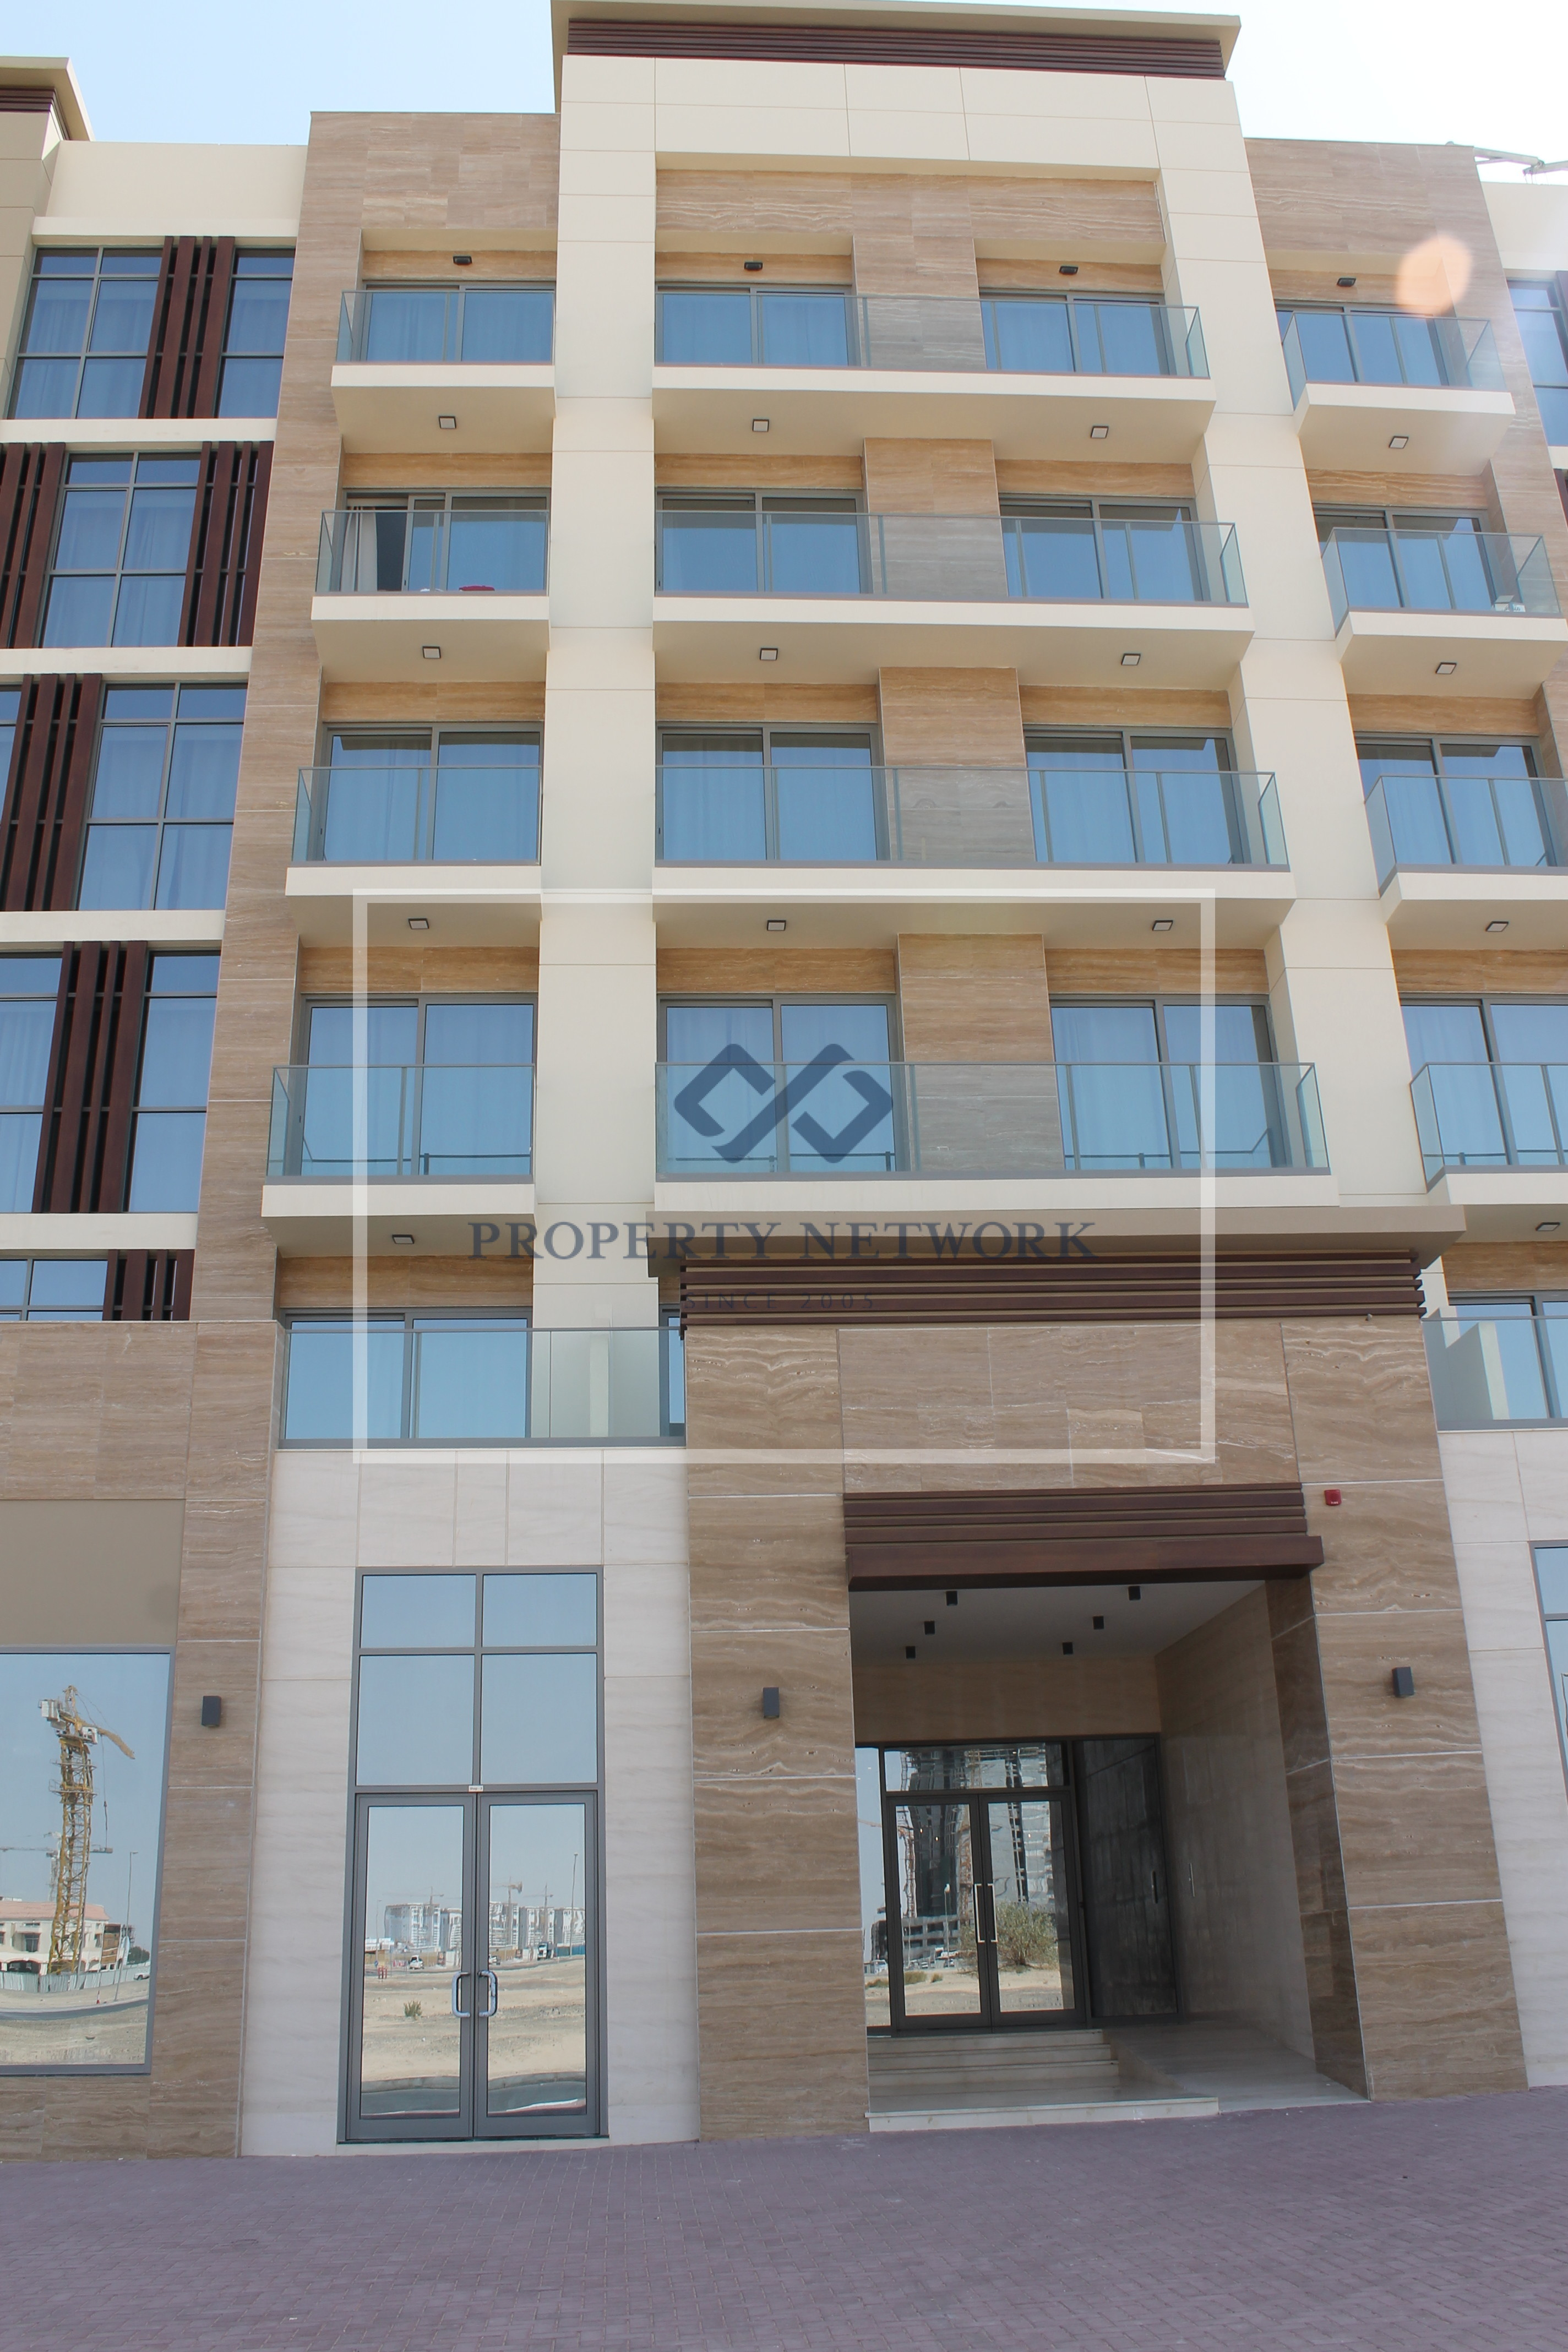 shops-in-majan-for-rent-50-off-on-1st-year